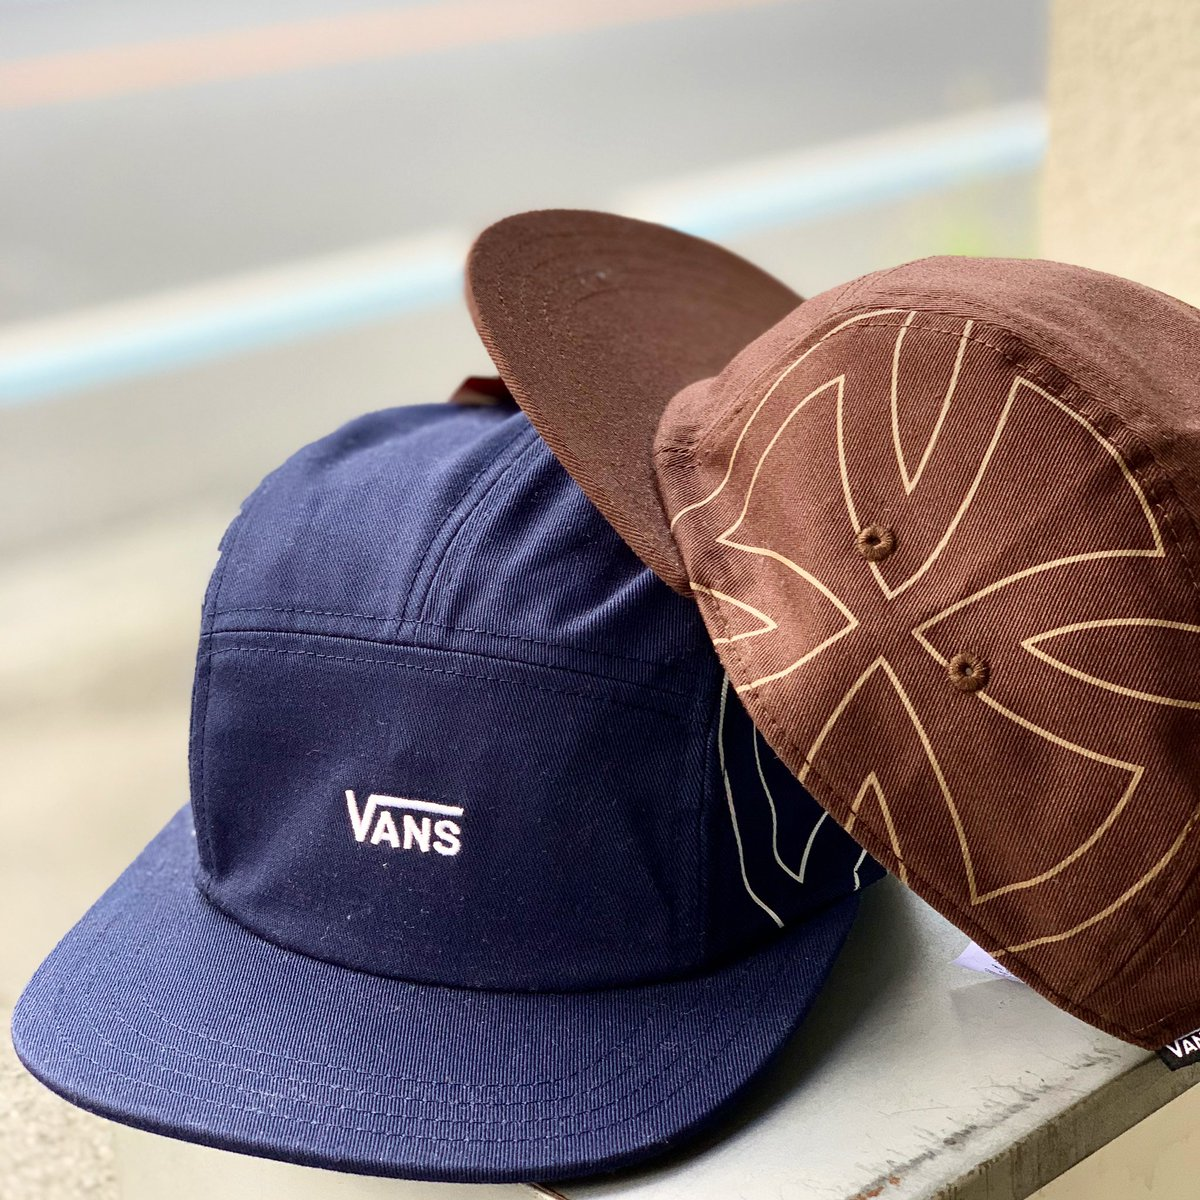 . VANS / INDEPENDENT CAMP CAP ¥5900+tax . アメリカ買い付けVANS🇺🇸 老舗トラックメーカー、インディペンデントとのコラボキャップ👌 . #mr_vibes #vans #ヴァンズ #independent #インディペンデント #cap #帽子 #kawagoe #川越 #本川越 #小江戸川越